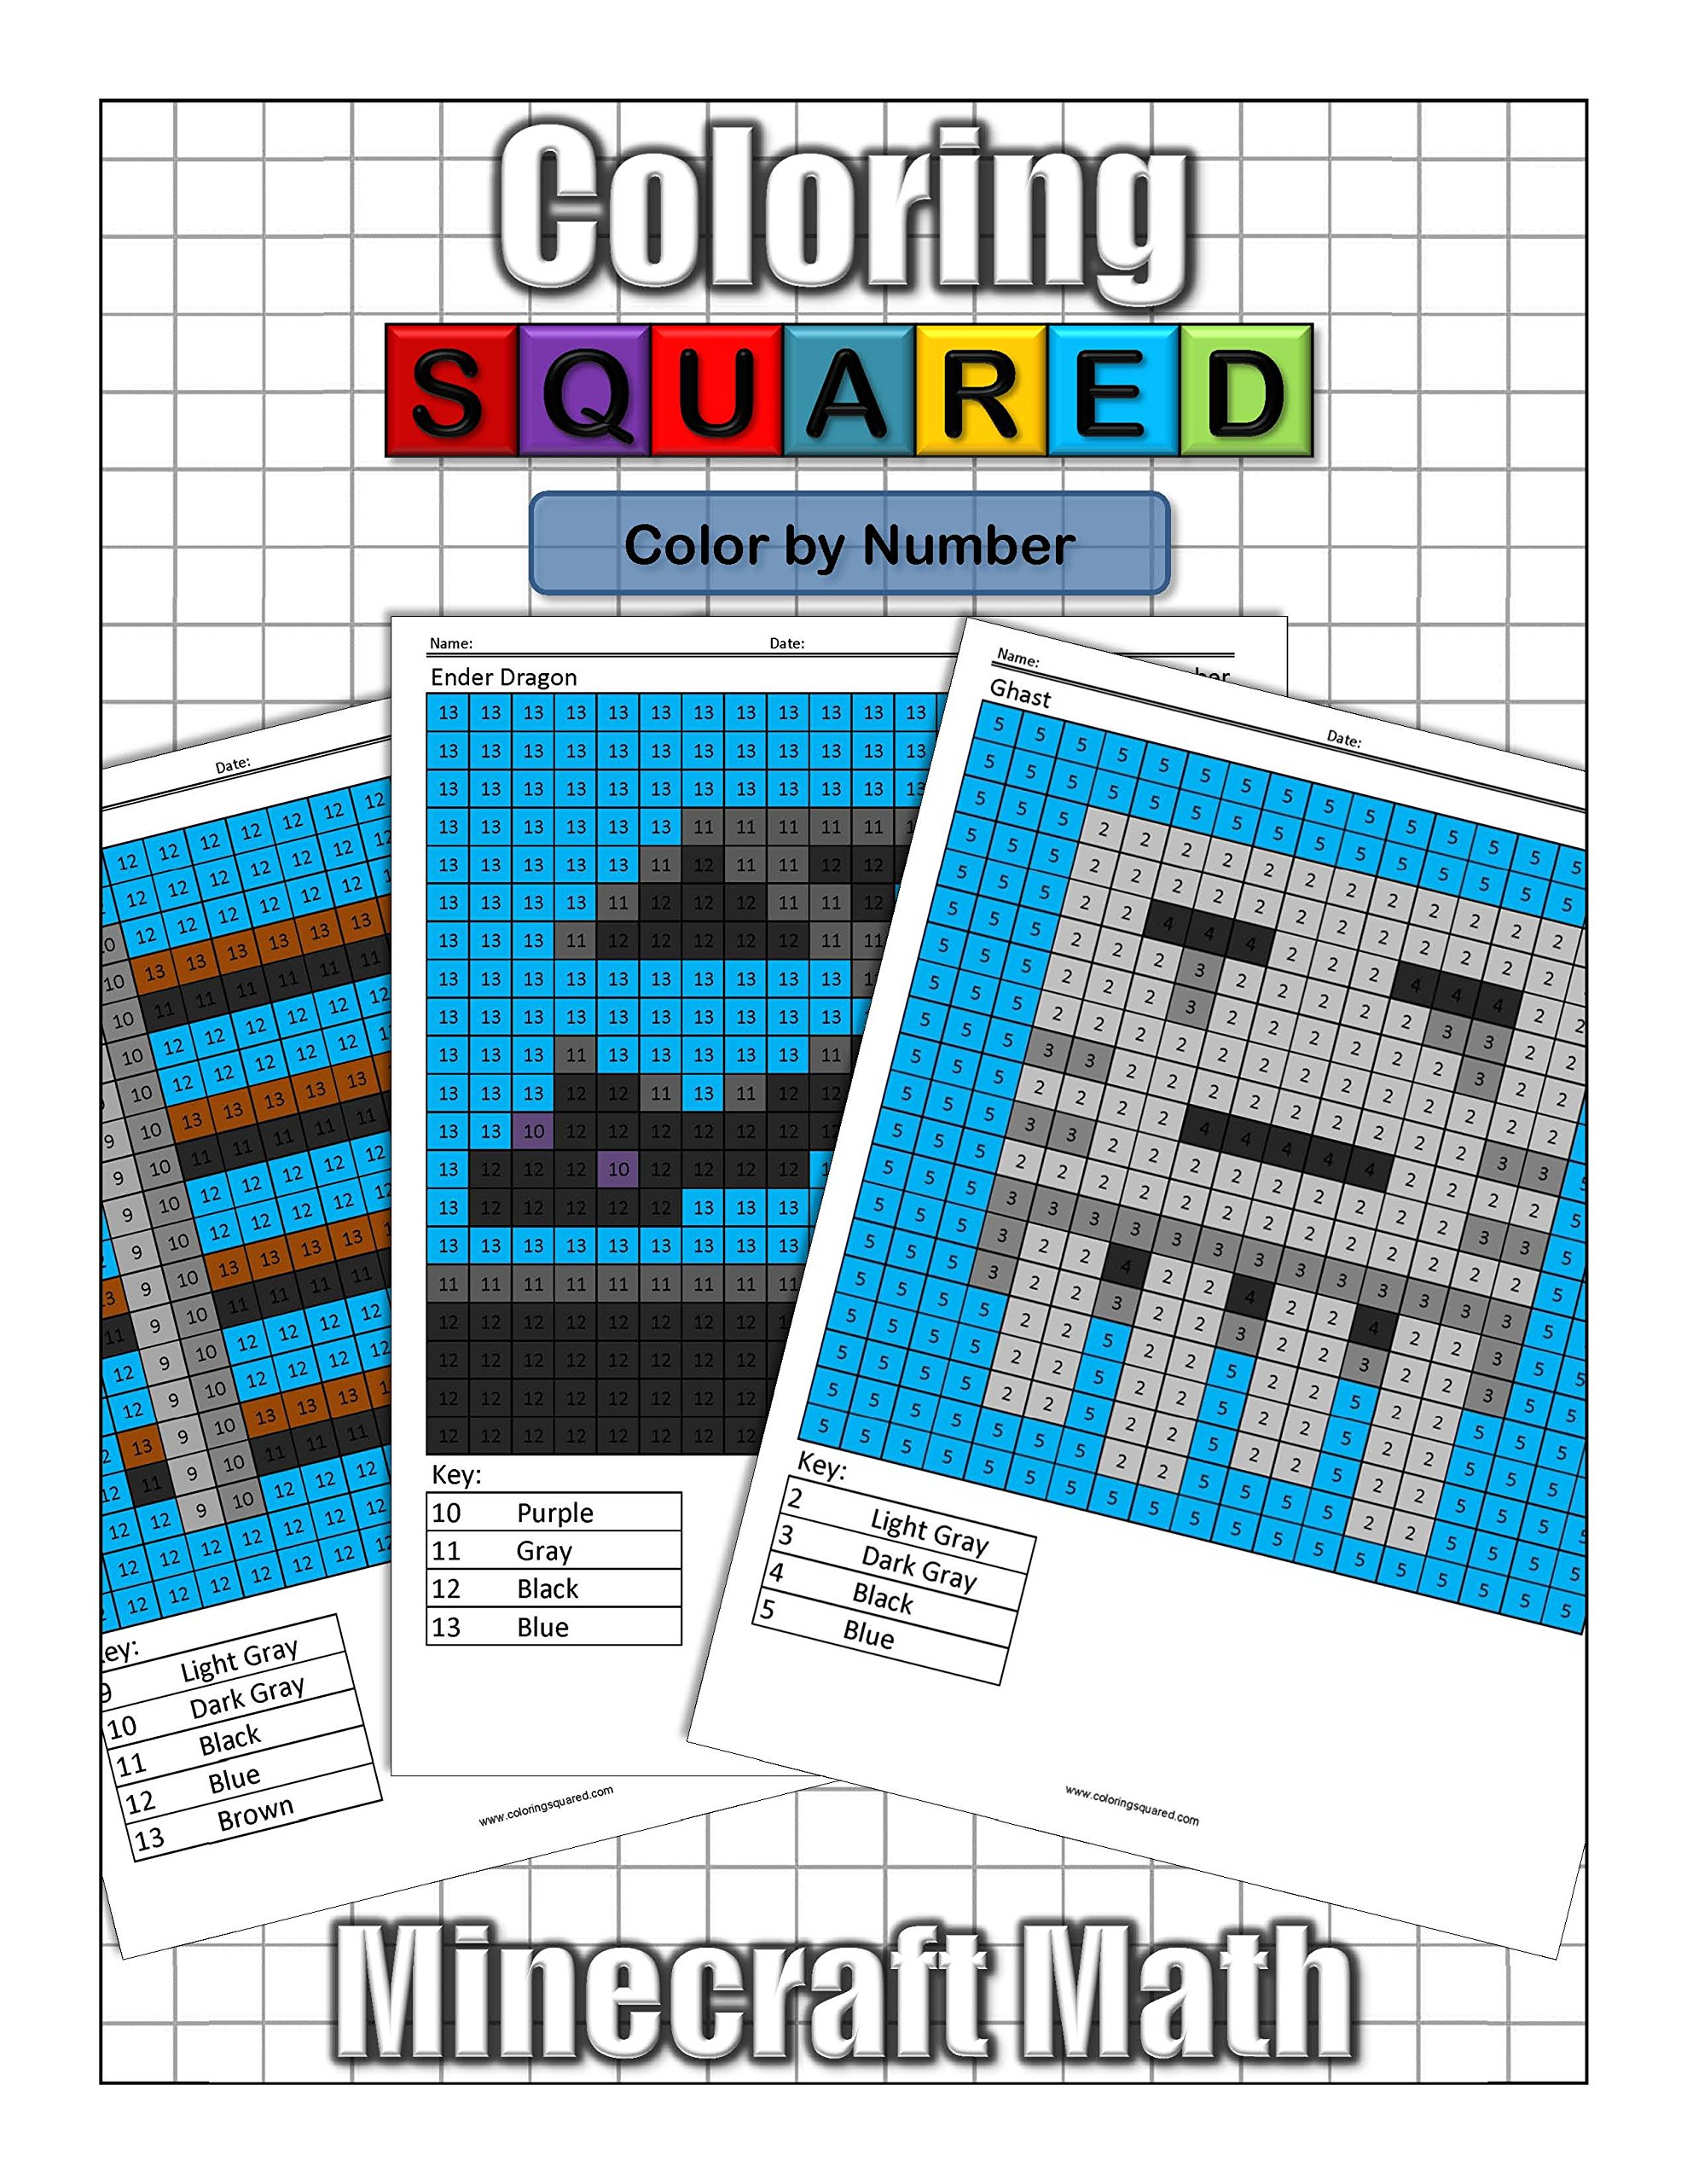 Coloring Squareds Minecraft Color By Number Cameron Krantzman 9781939668172 Amazon Books